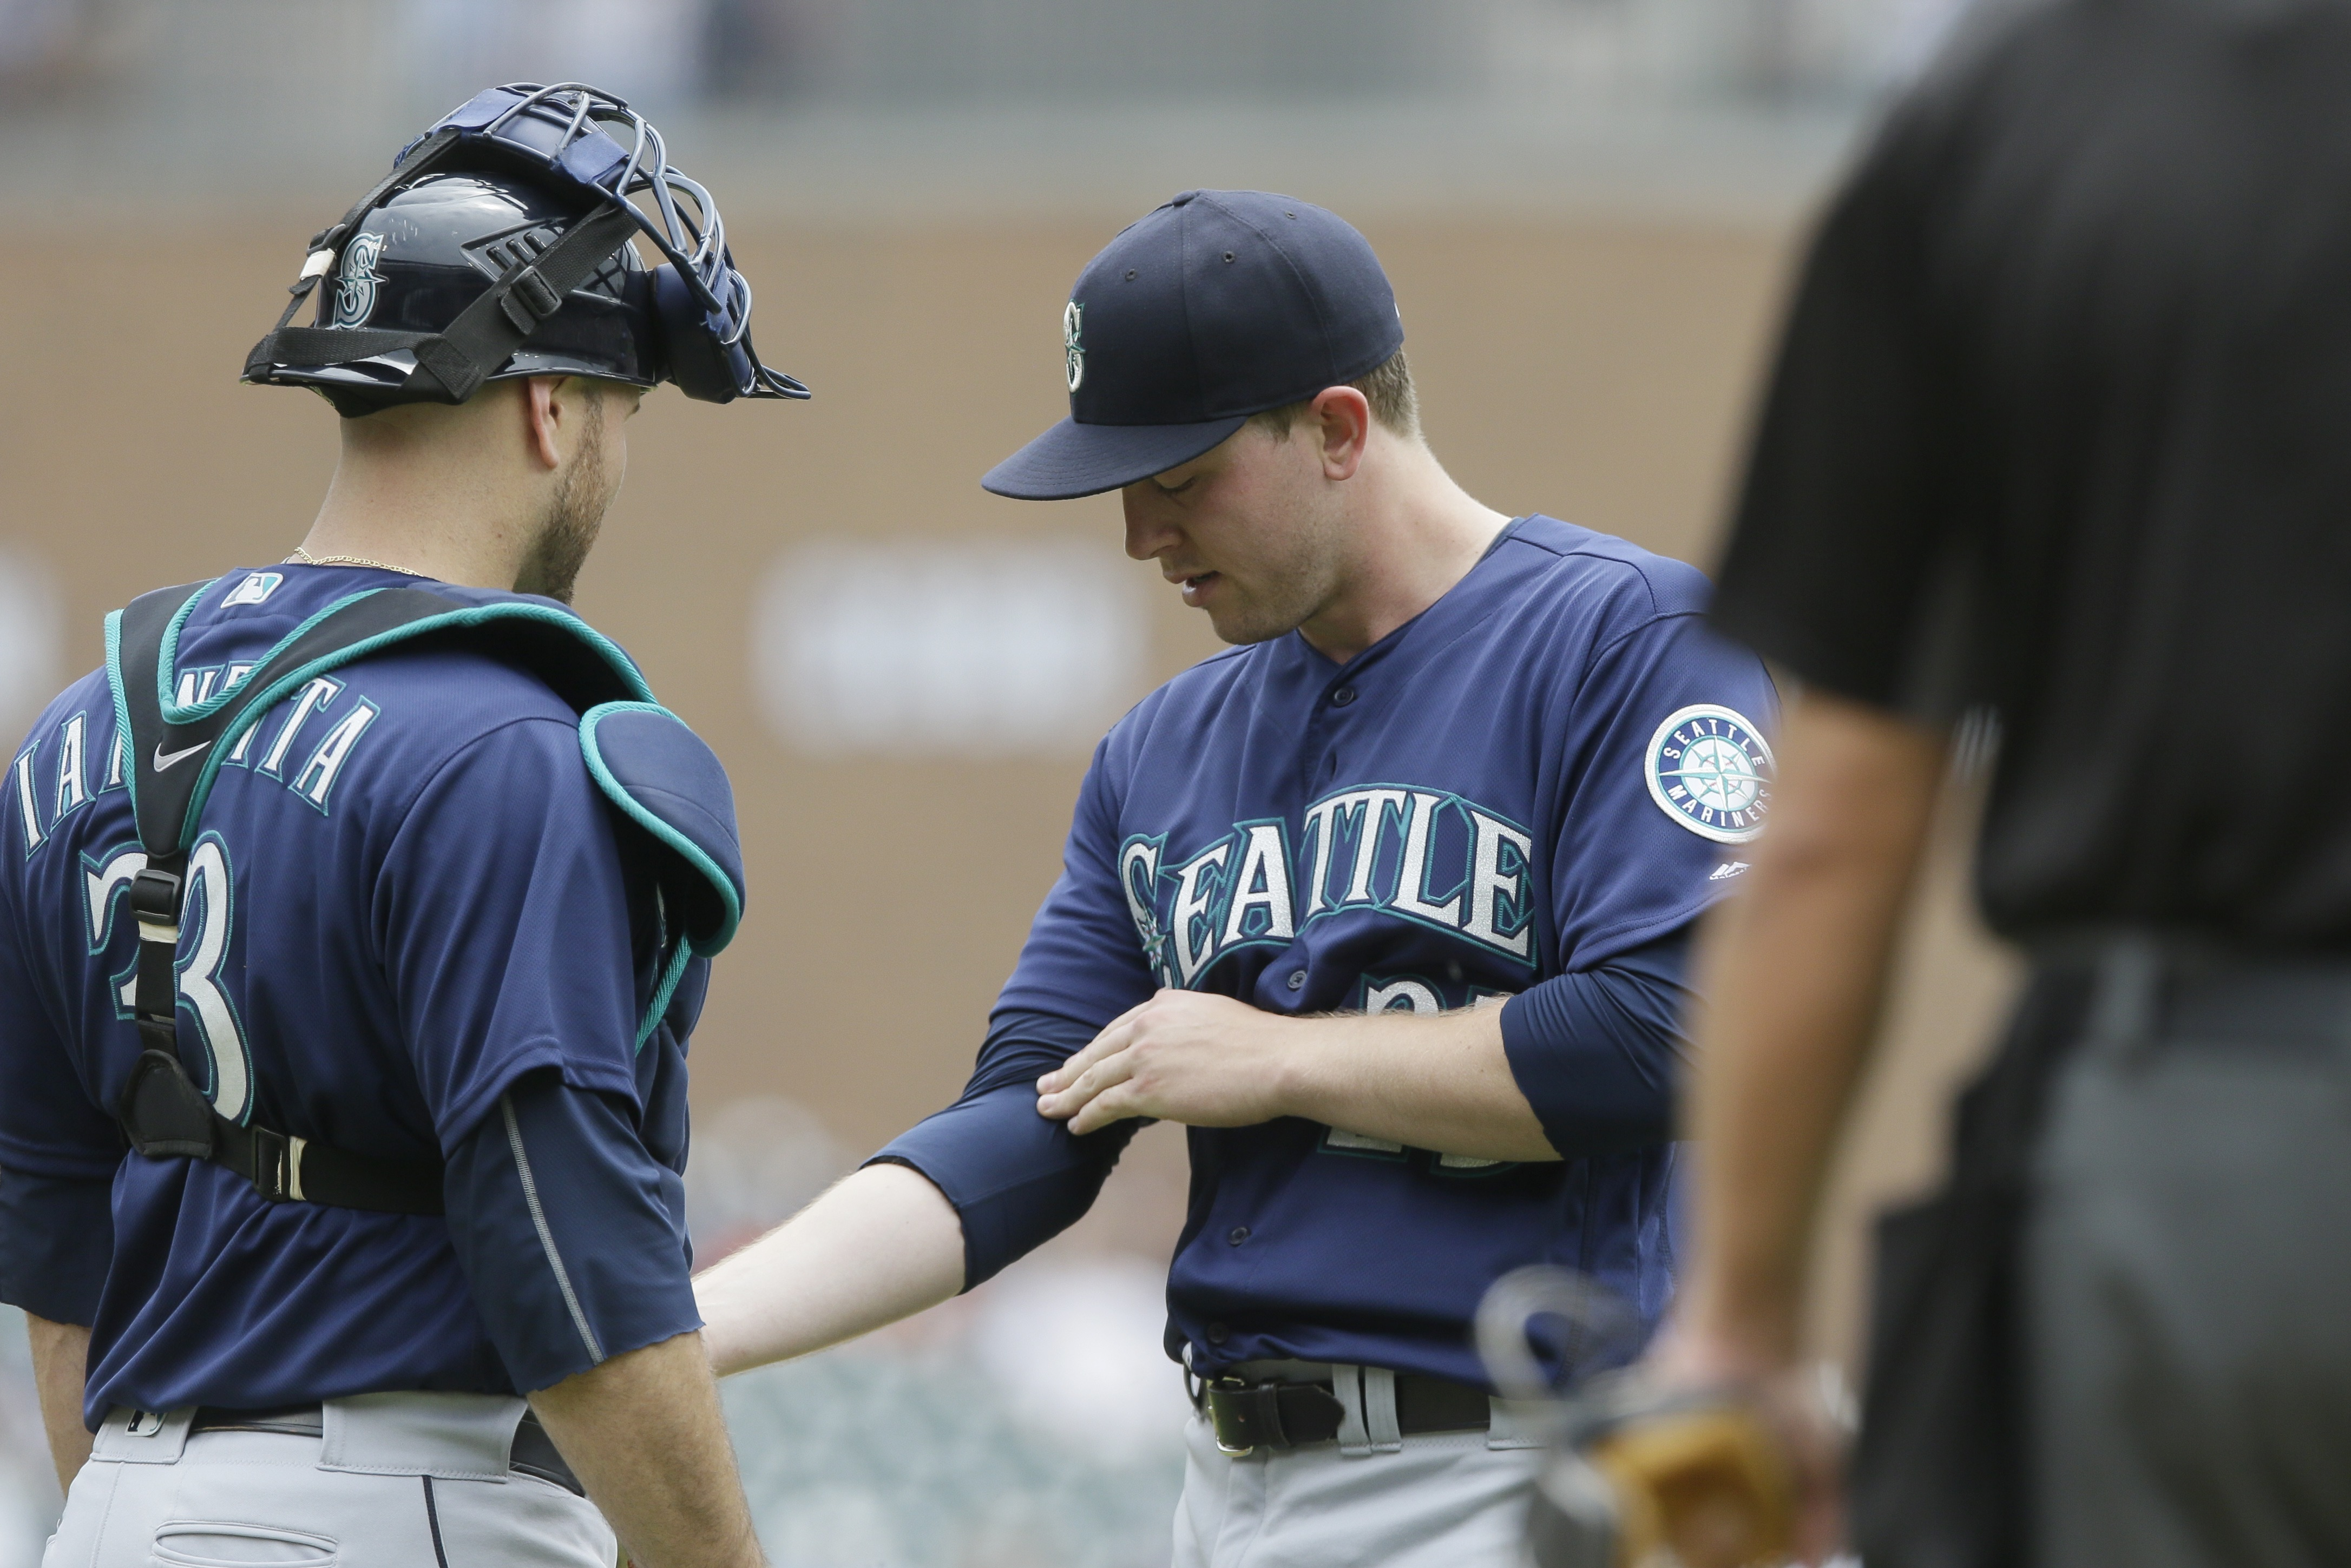 Seattle Mariners starting pitcher Adrian Sampson points to his right forearm as he talks with catcher Chris Iannetta before the first inning of a baseball game against the Detroit Tigers, Thursday, June 23, 2016 in Detroit. Sampson was replaced with pitch